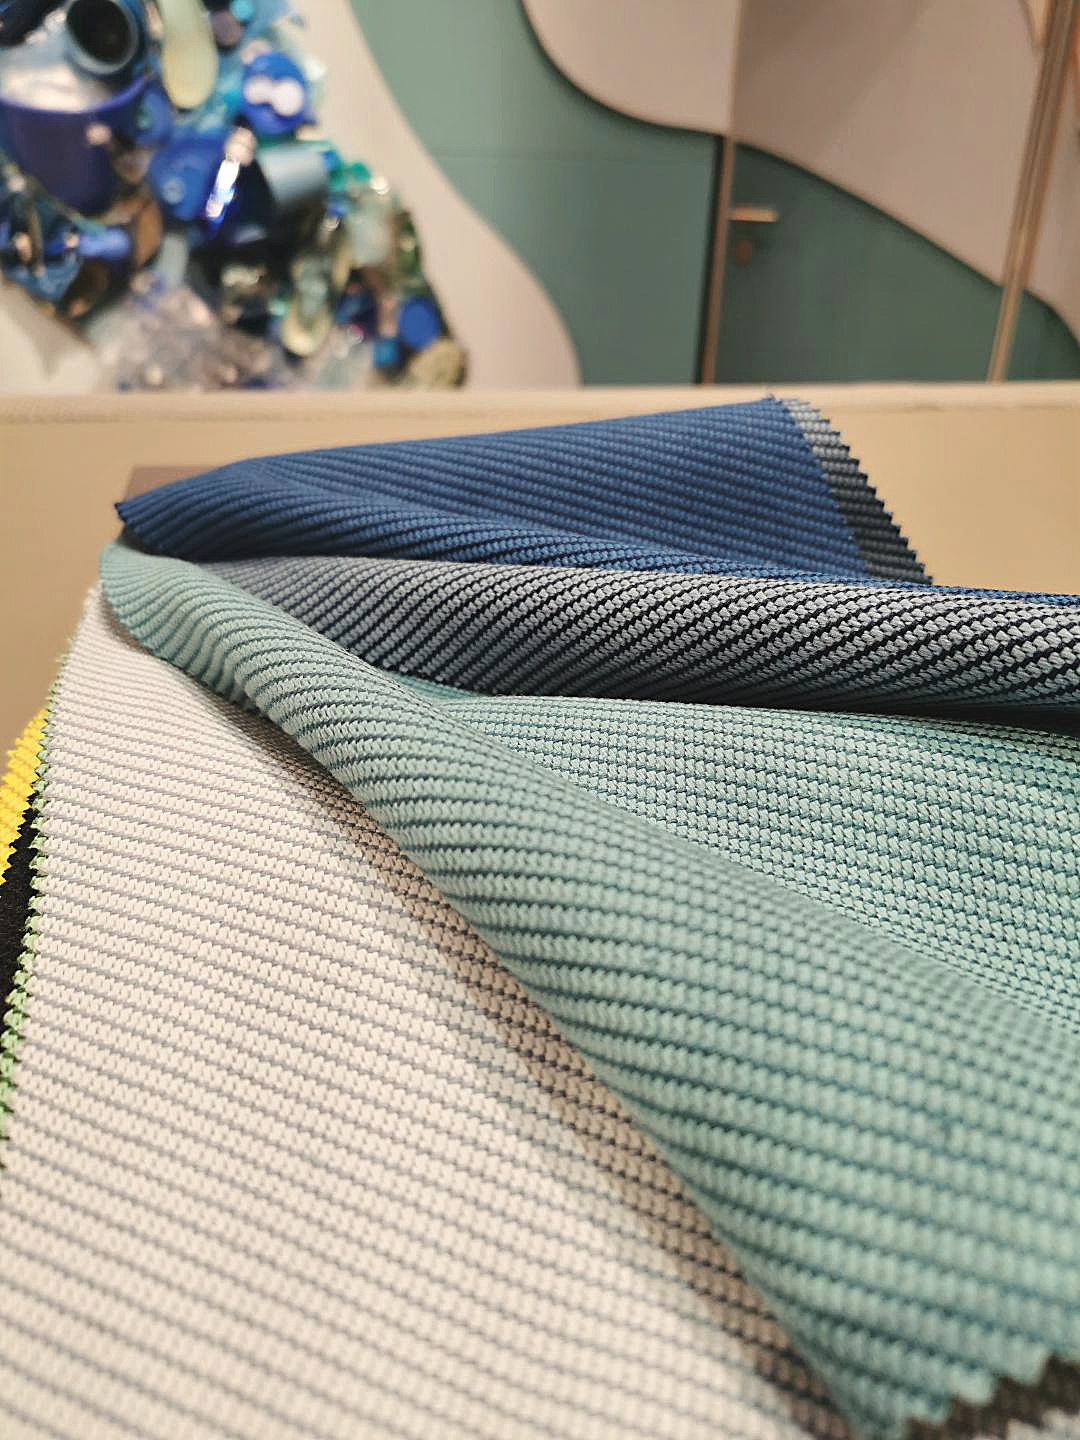 Camira is turning sea waste into fabric for the good of the planet, Stockholm Design Week, sustainable design, eco fabric, sea colours